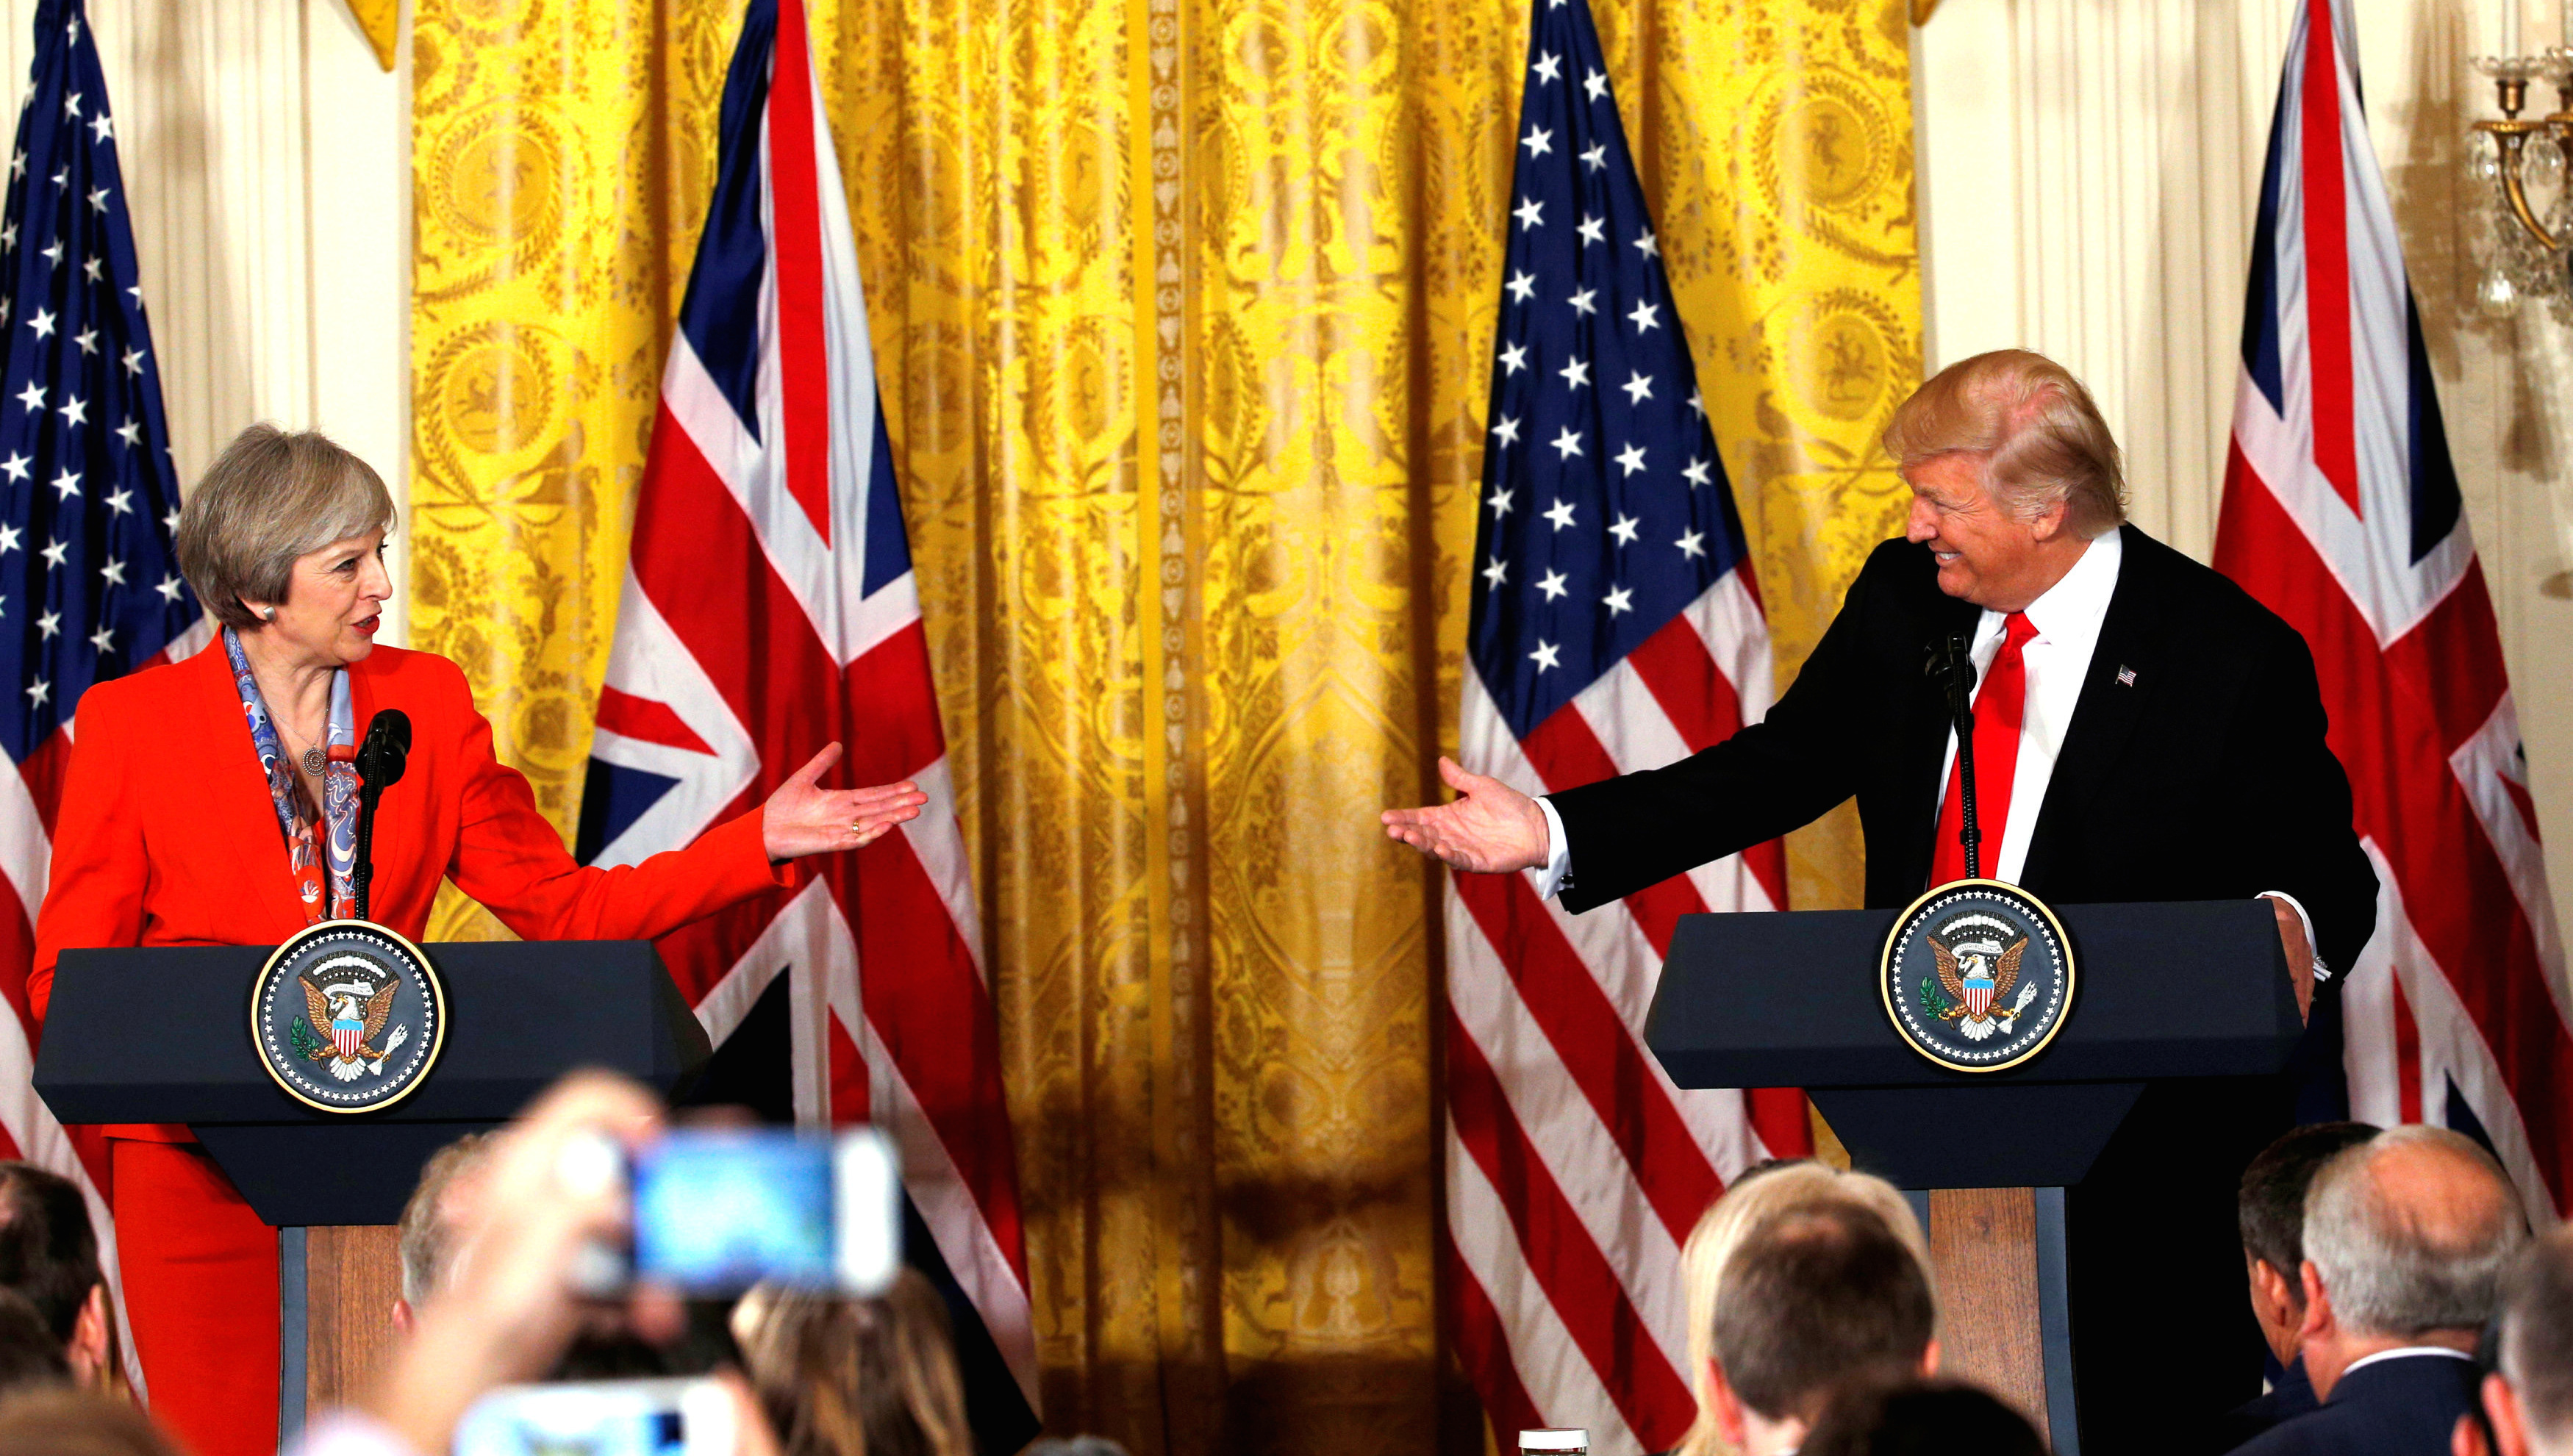 British Prime Minister Theresa May and U.S. President Donald Trump gesture towards each other during their joint news conference at the White House in Washington, U.S., January 27, 2017.